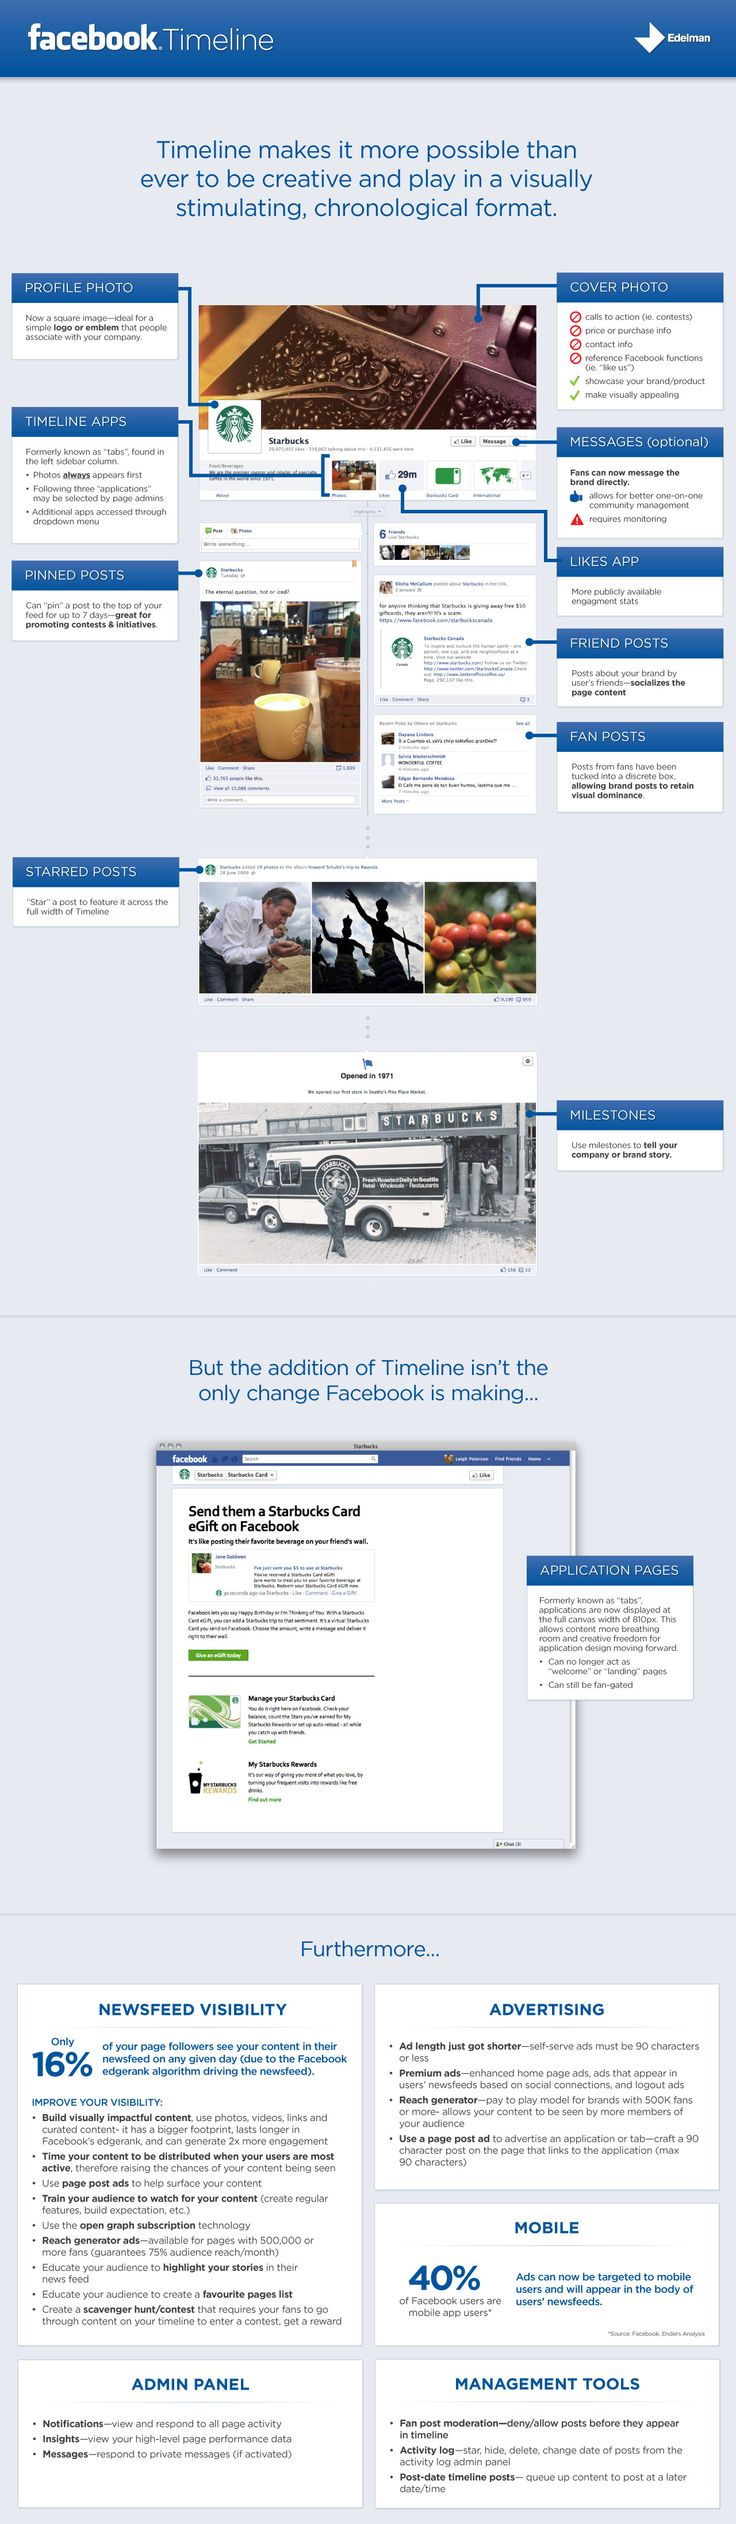 This is old news, but everything you need to know about Facebook Timeline